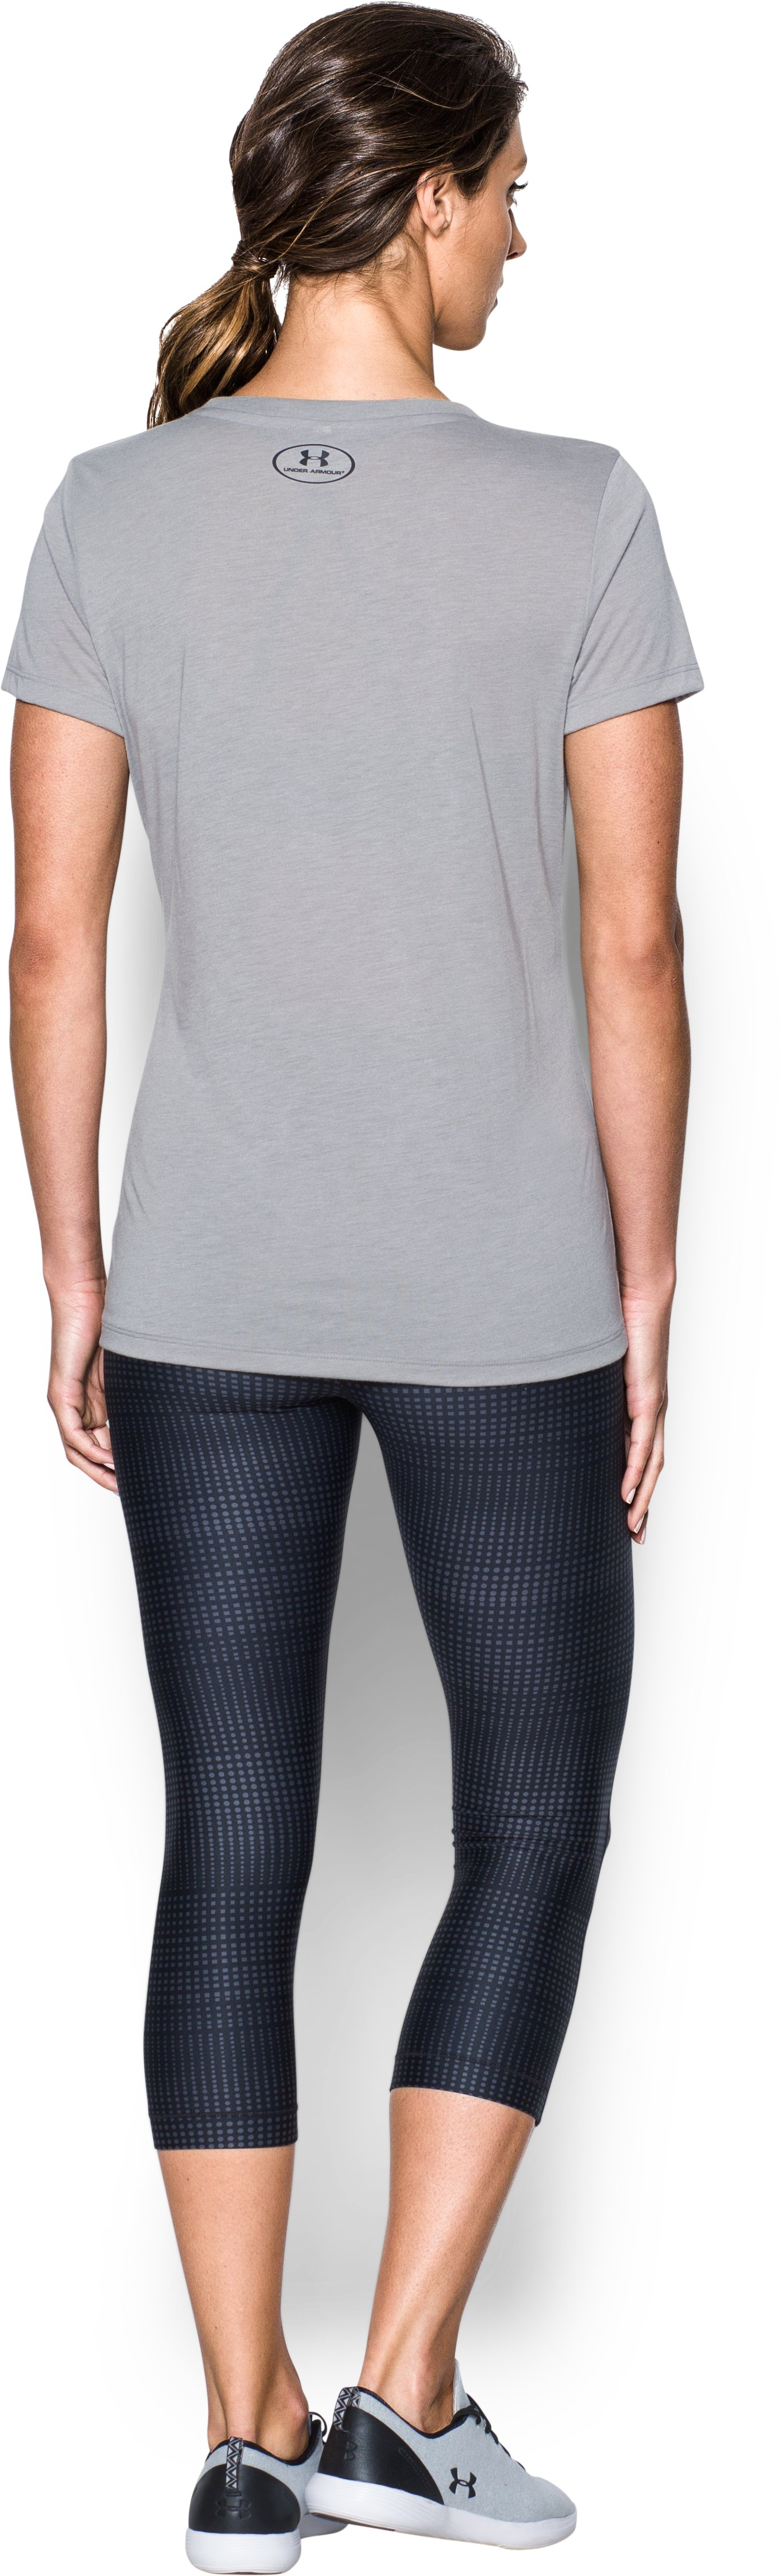 Women's UA Threadborne™ Graphic Short Sleeve, True Gray Heather, Back